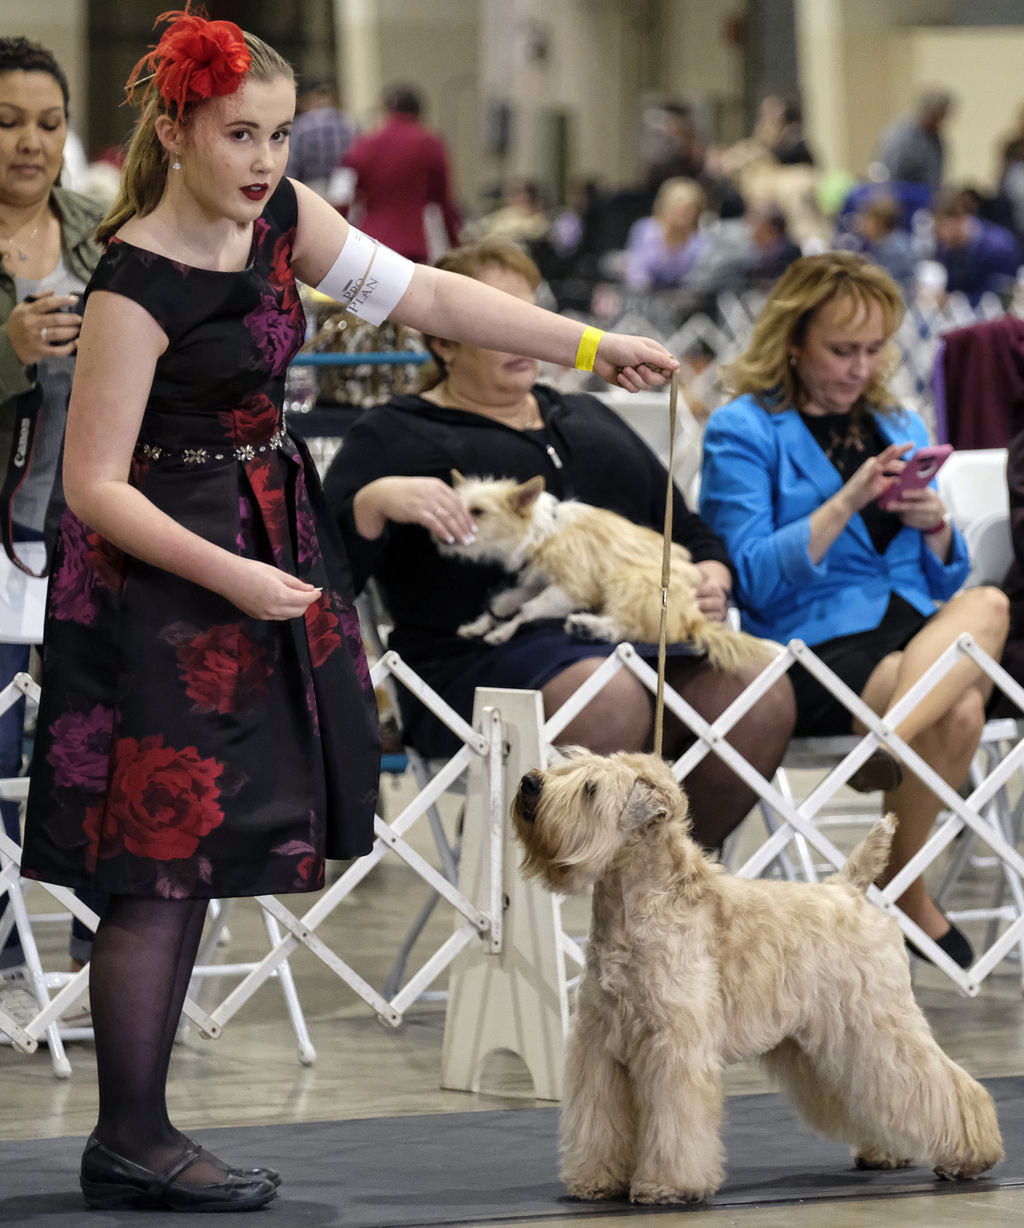 This Saturday, March 4, 2017 photo shows Riley Capton with her 4 year old Wheaten Terrier, Florence, competing at the Annual Kennel Clu...